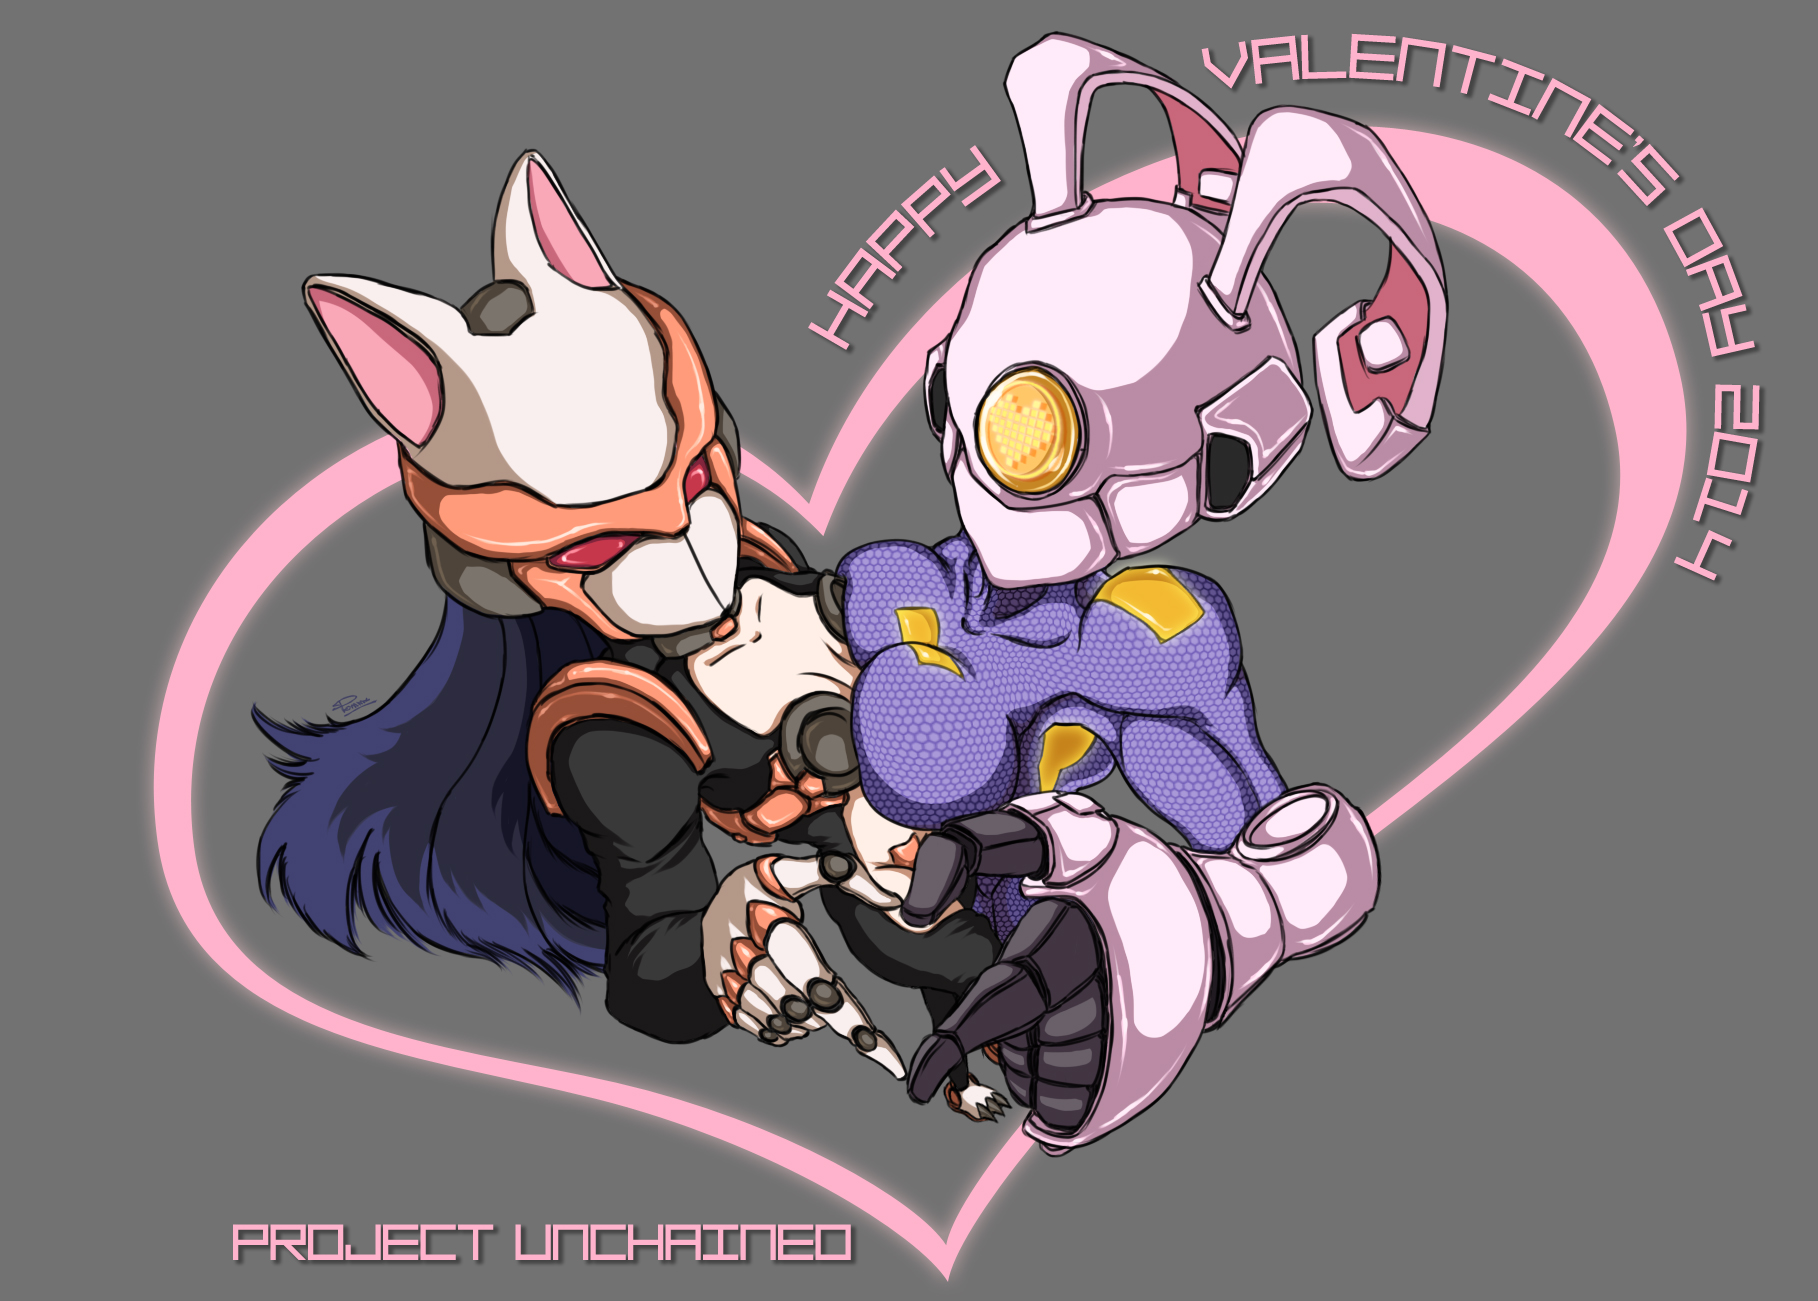 Cyber Love - Valentine's 2014 by Project Unchained by pommegenozide